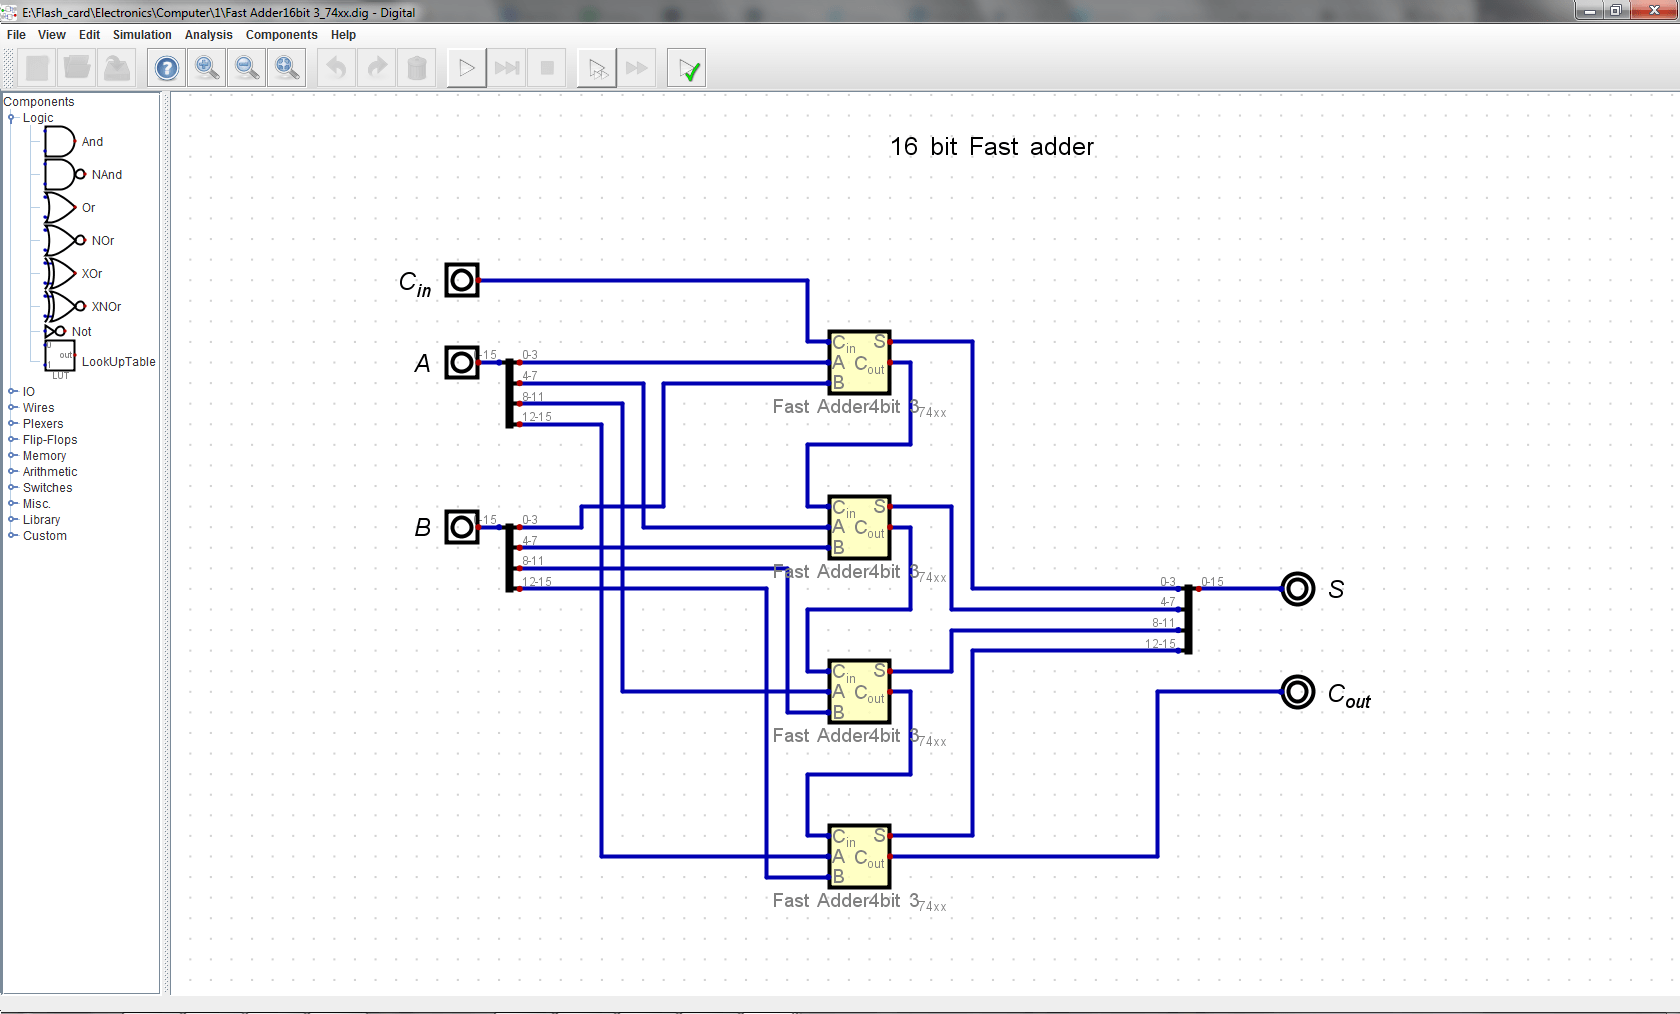 hight resolution of logic unit also operates on a in and b in inputs bitwise has three outputs essentially it is compount xor gate made from ands and nors inverters